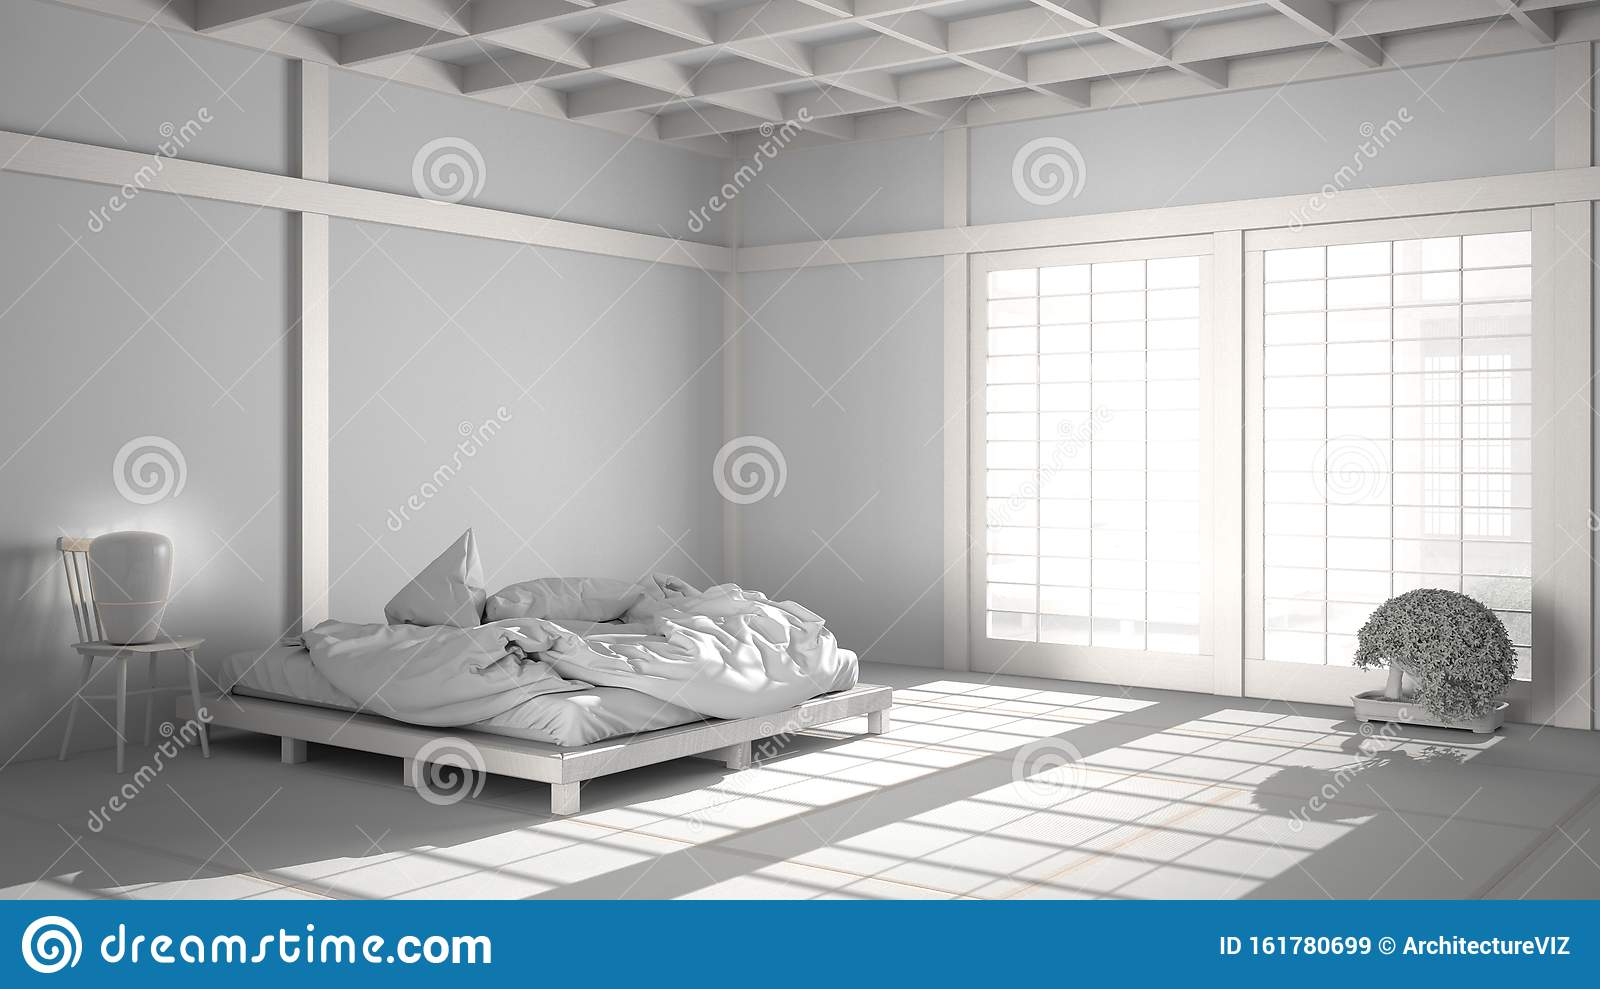 Japanese Bedroom Stock Illustrations 571 Japanese Bedroom Stock Illustrations Vectors Clipart Dreamstime